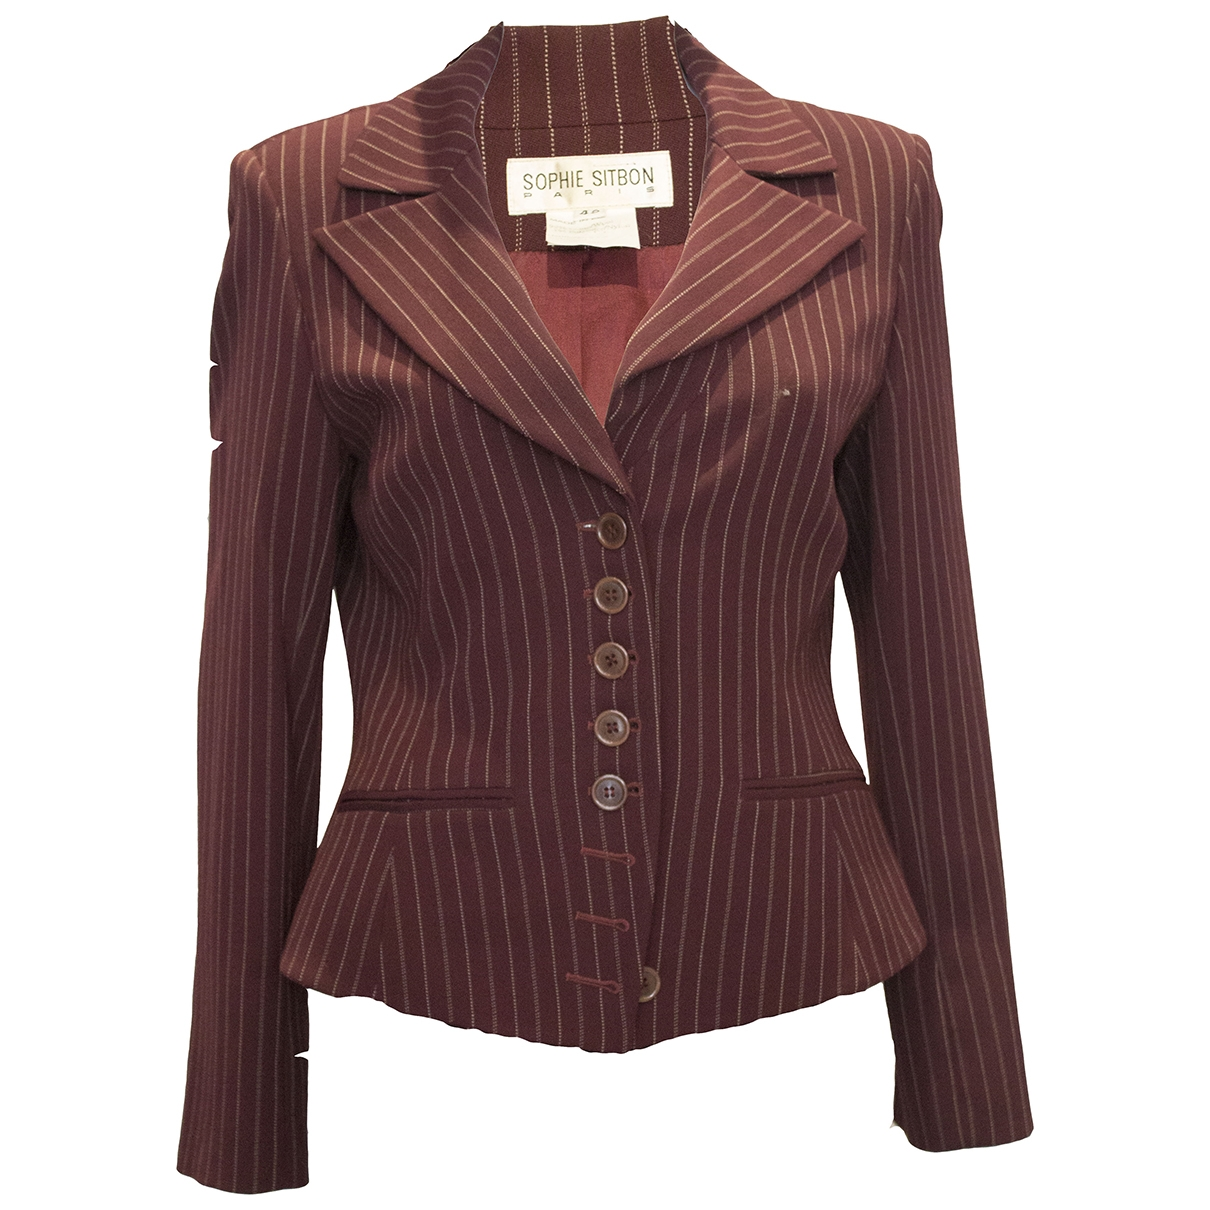 Non Signé / Unsigned \N Burgundy jacket for Women S International